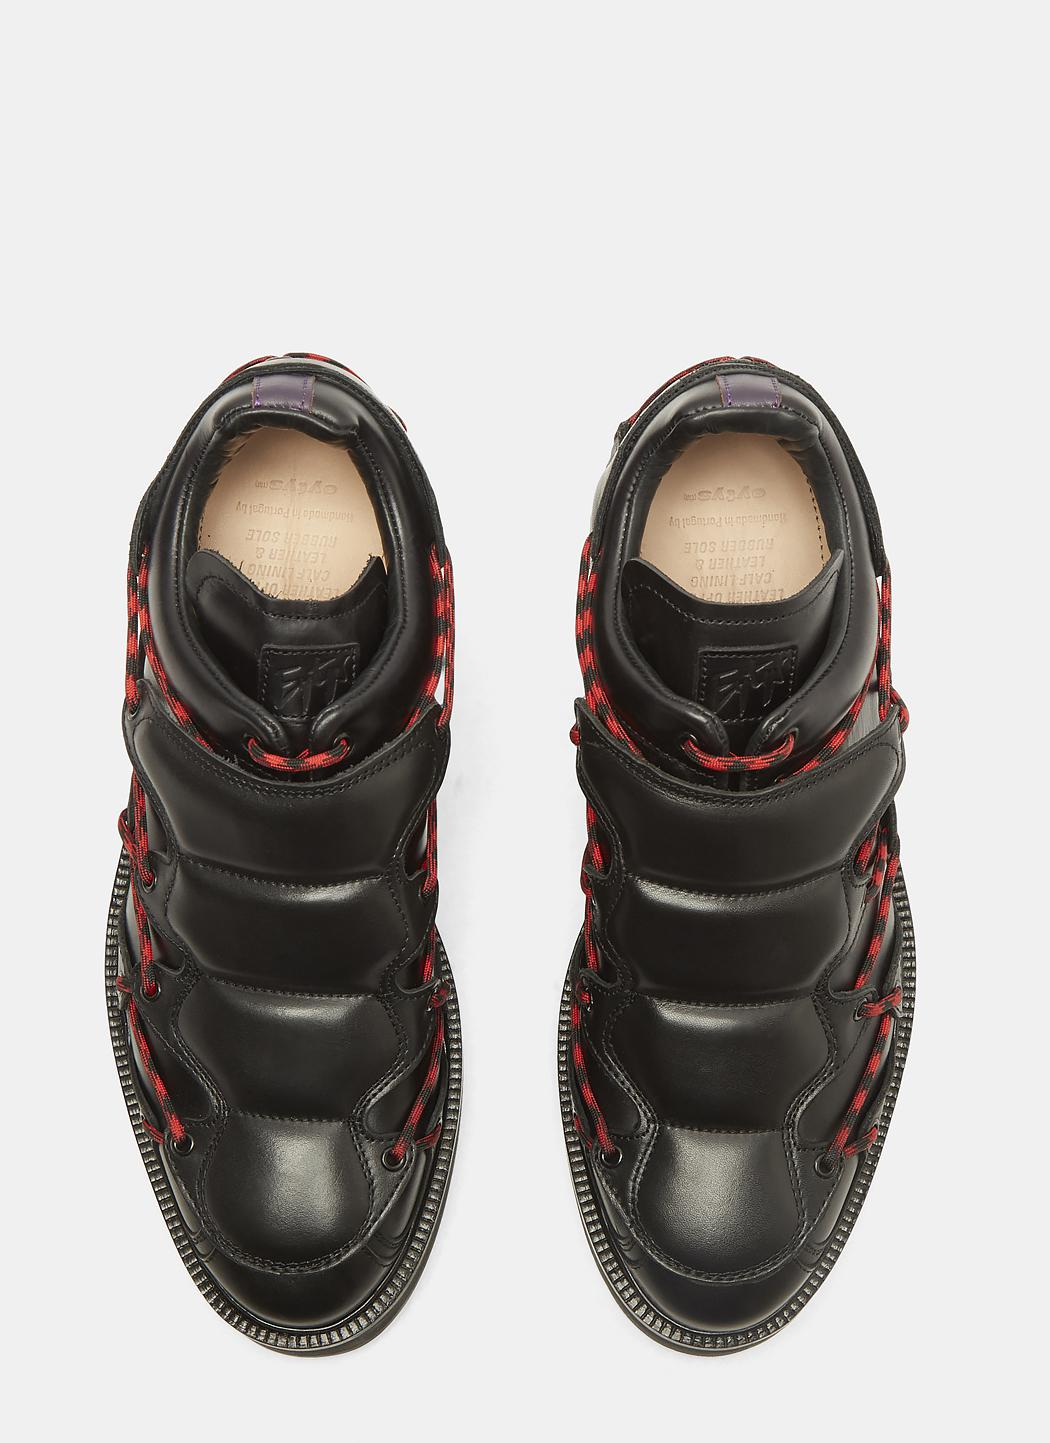 Morso Leather Sneakers Eytys uTRMaed